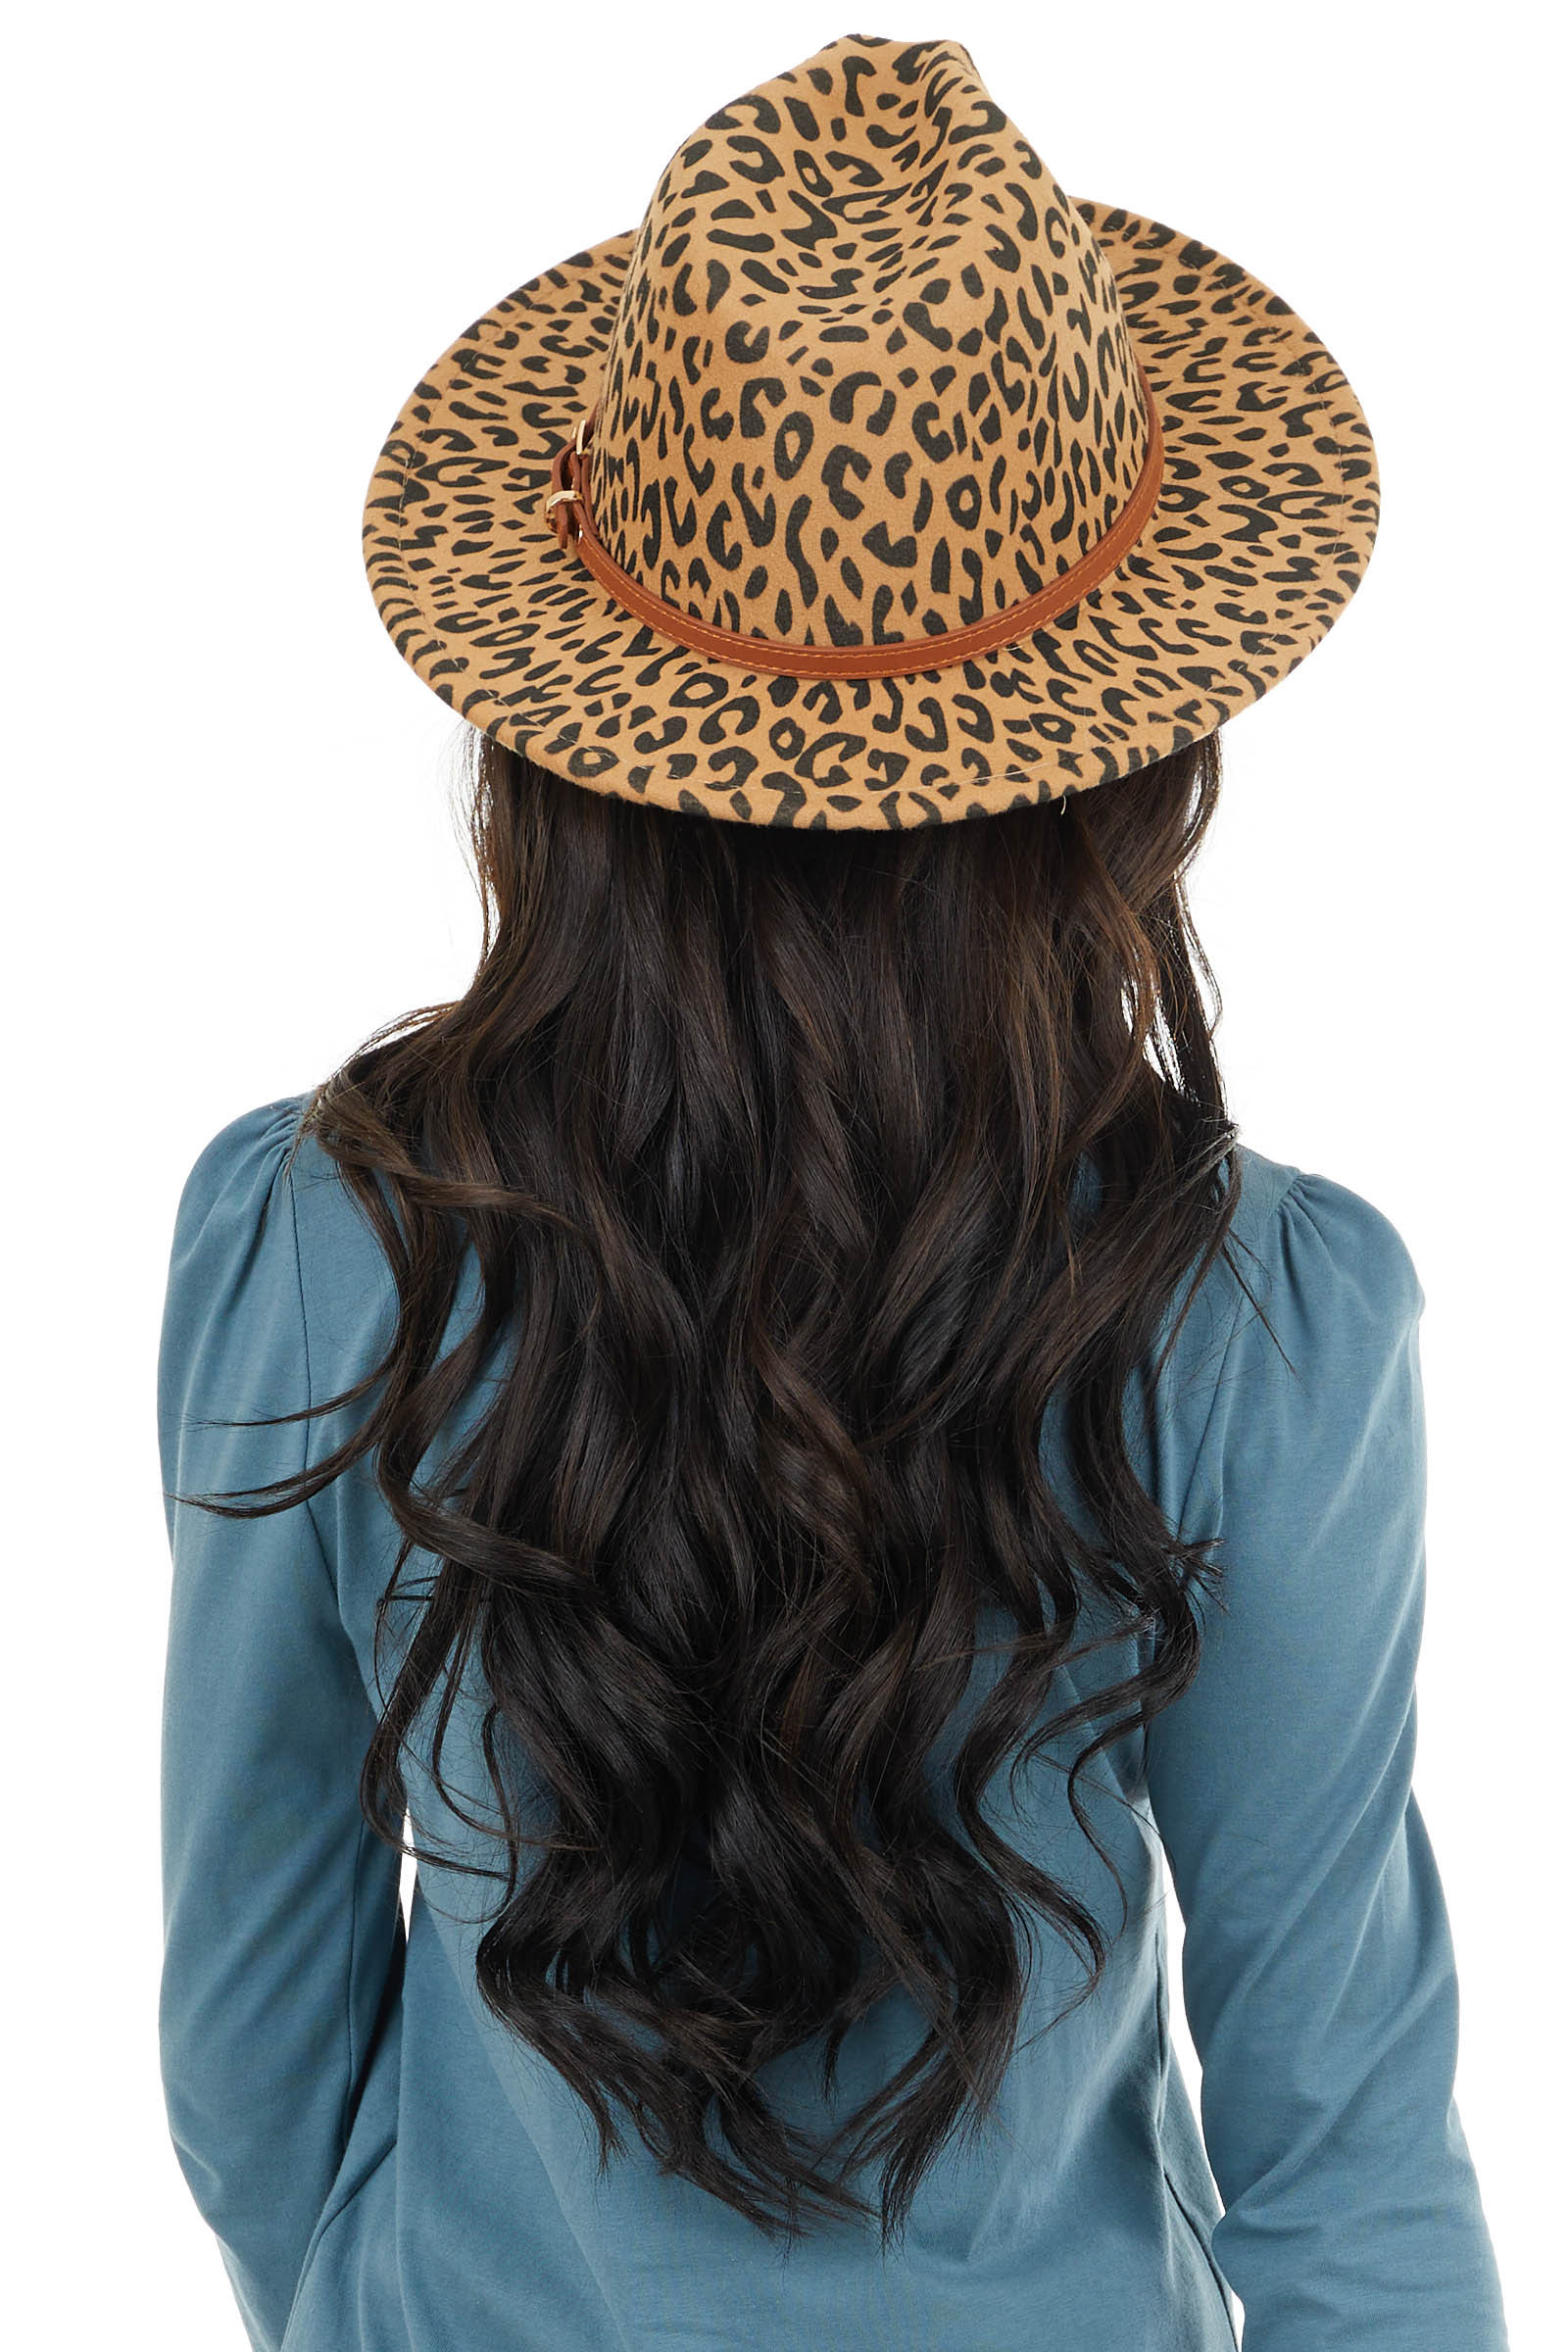 Beige Leopard Print Panama Hat with Brown Belt Detail